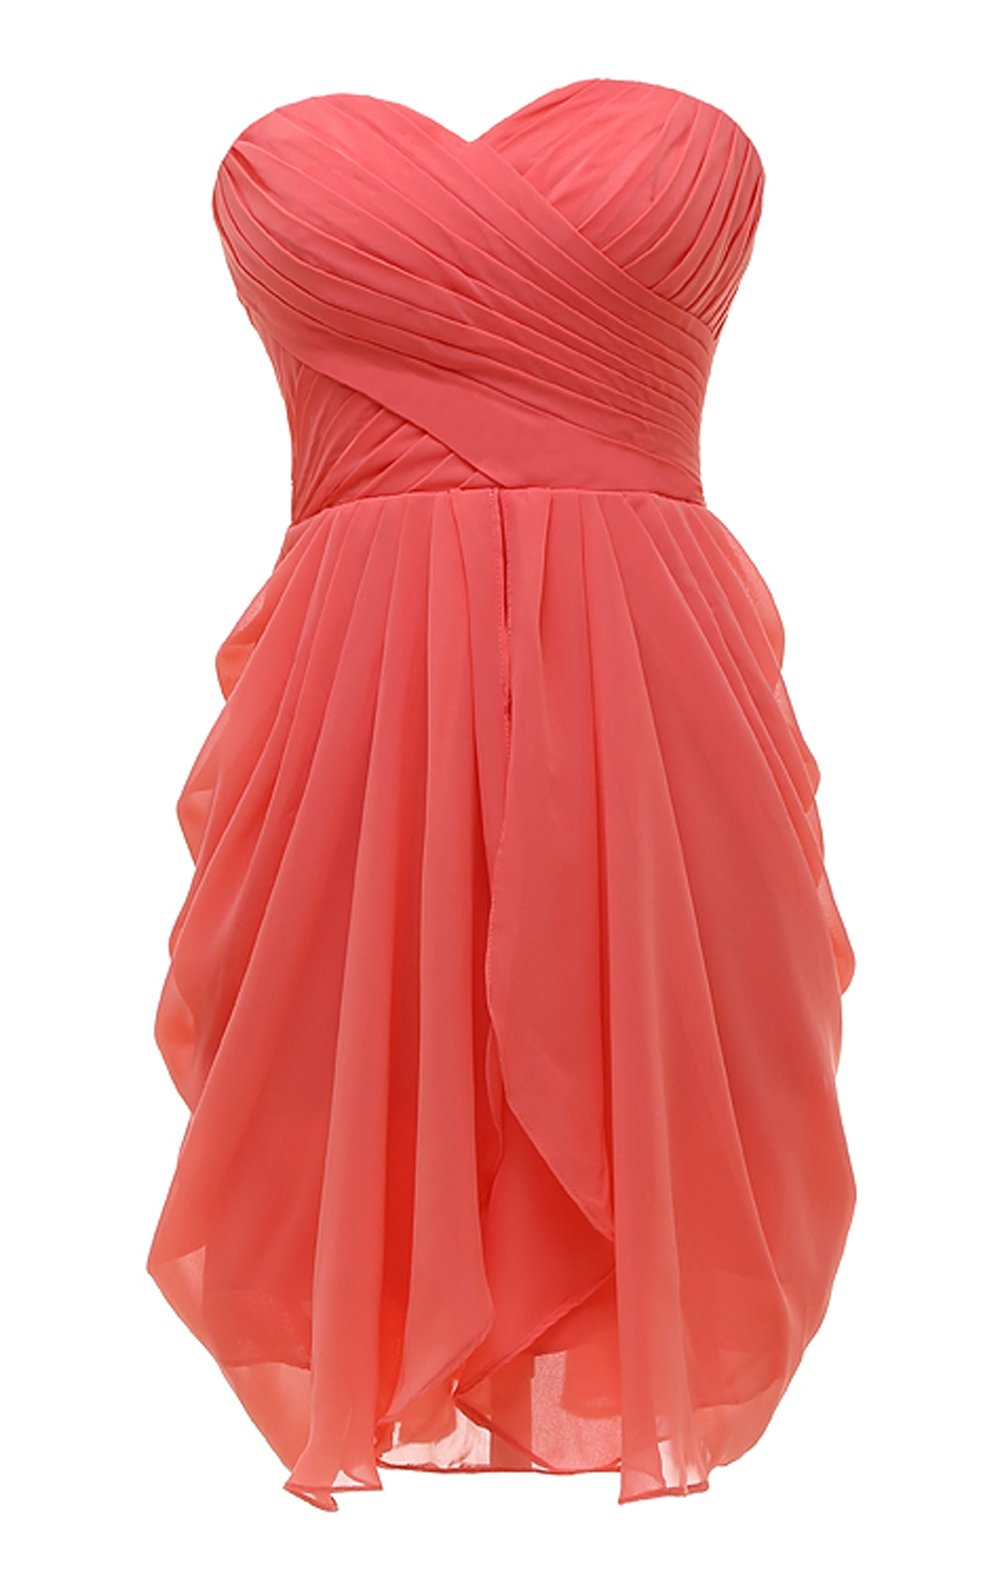 Available at Amazon: Kiss Dress Women's Bridesmaid Dresses Short Strapless Sweetheart Chiffon Prom Gowns